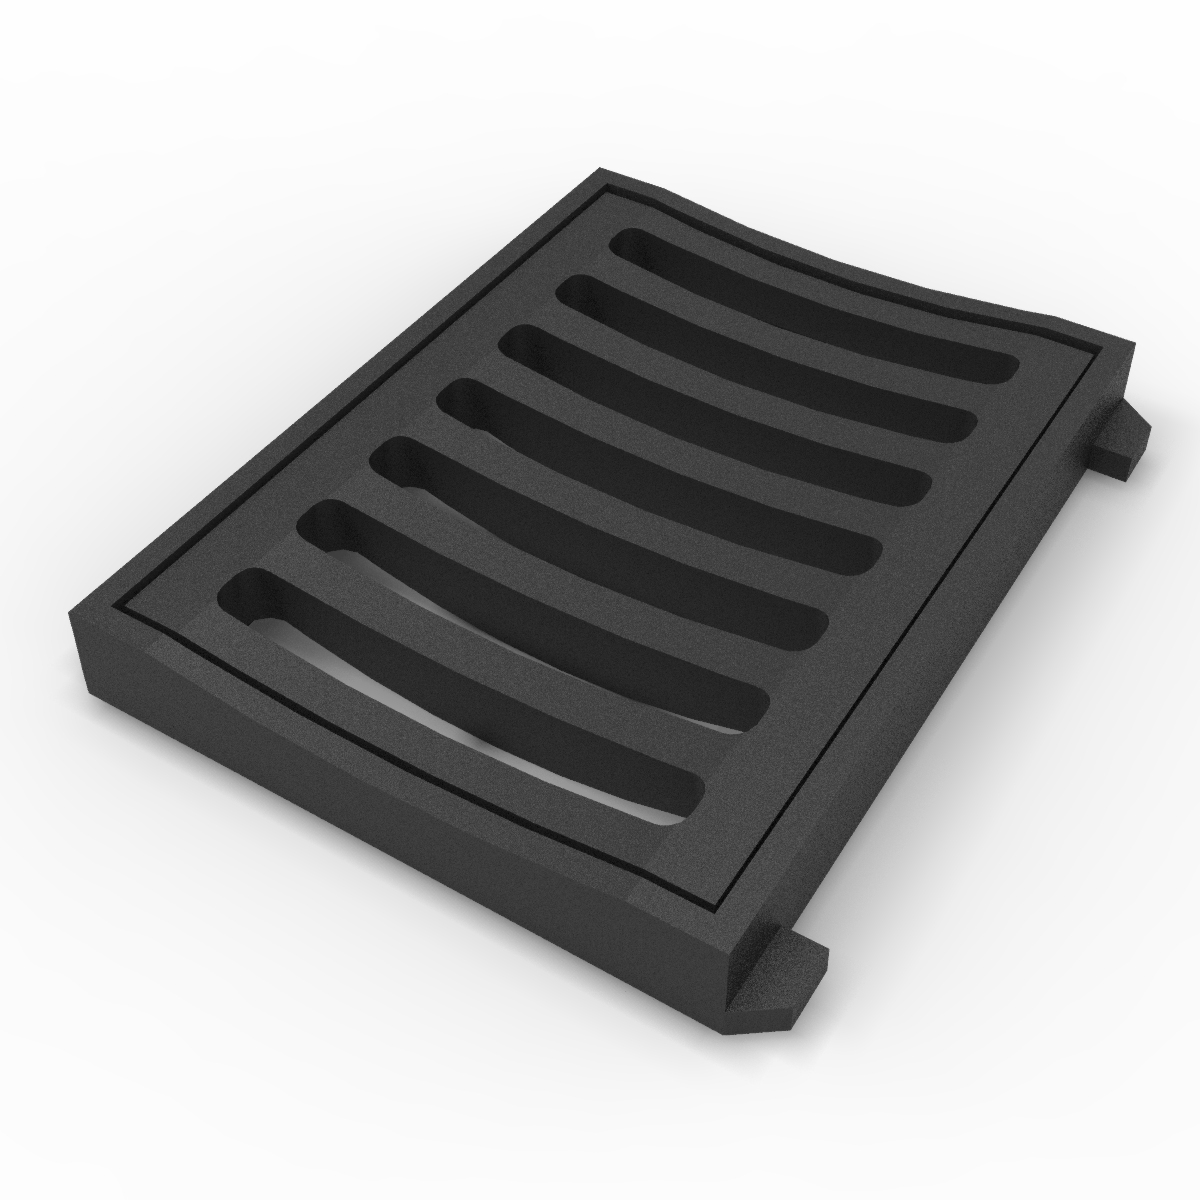 Concave scupper grate and frame grey casting E-LEON